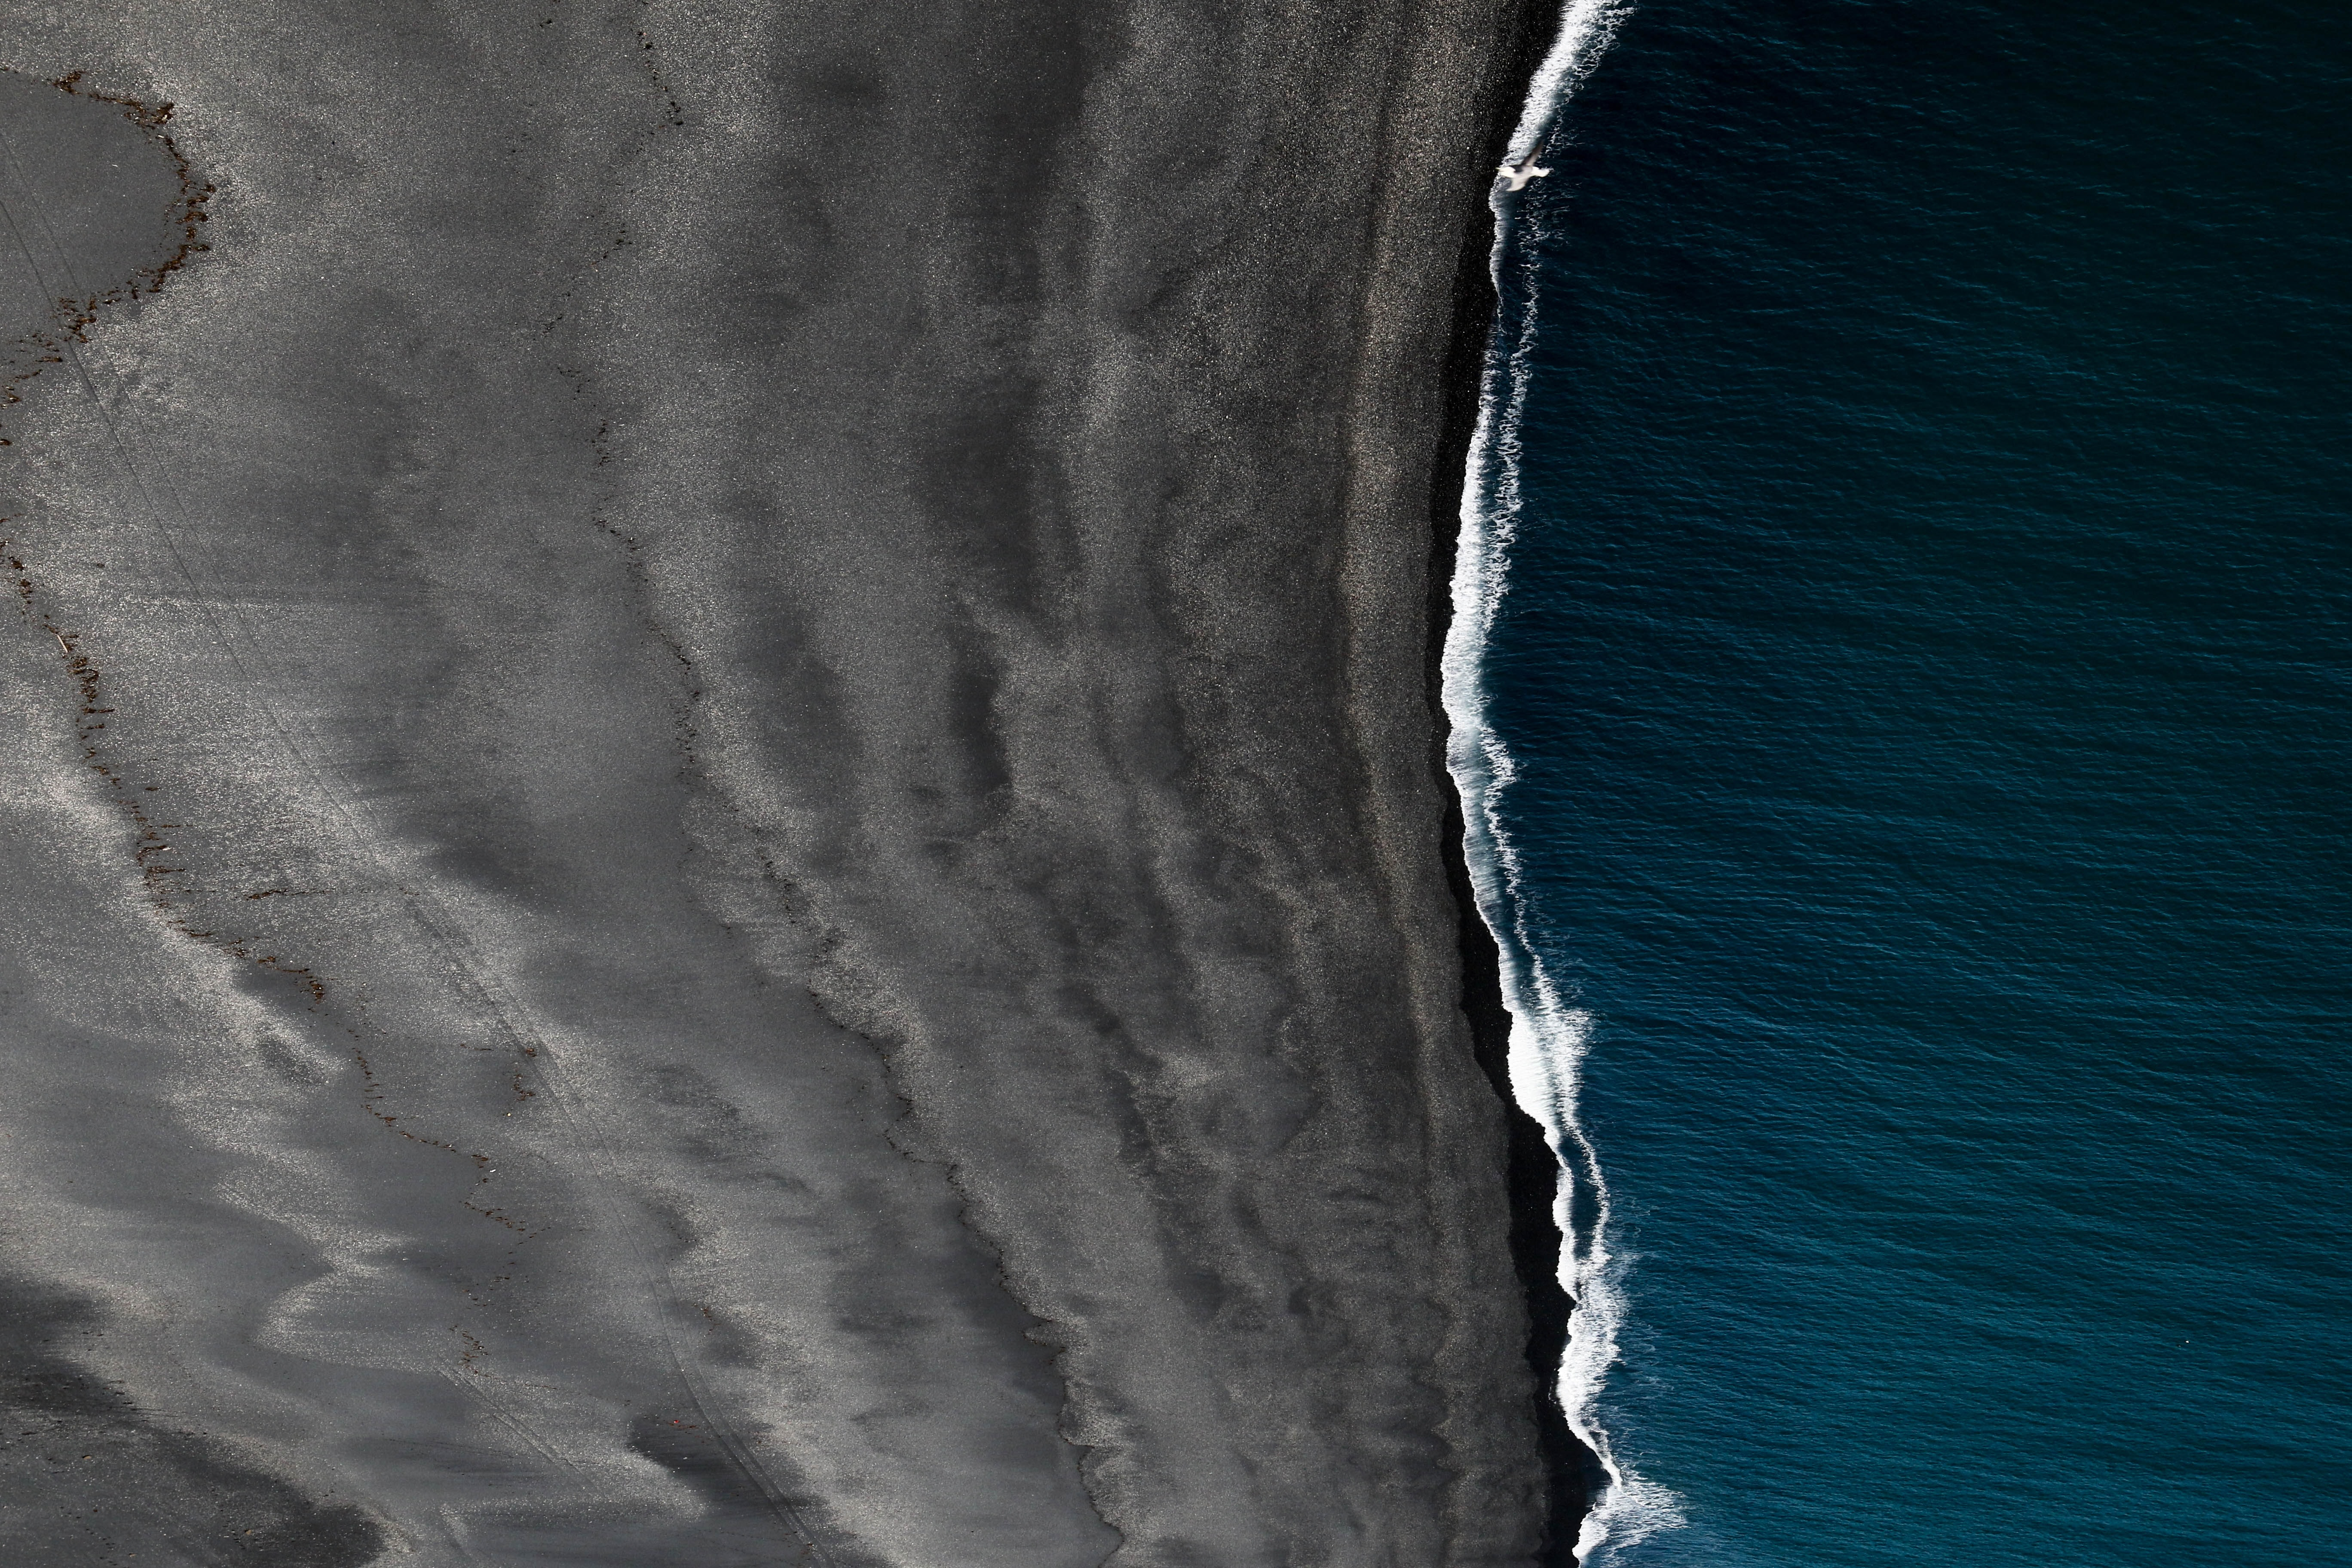 bird's view of black sand and body of water